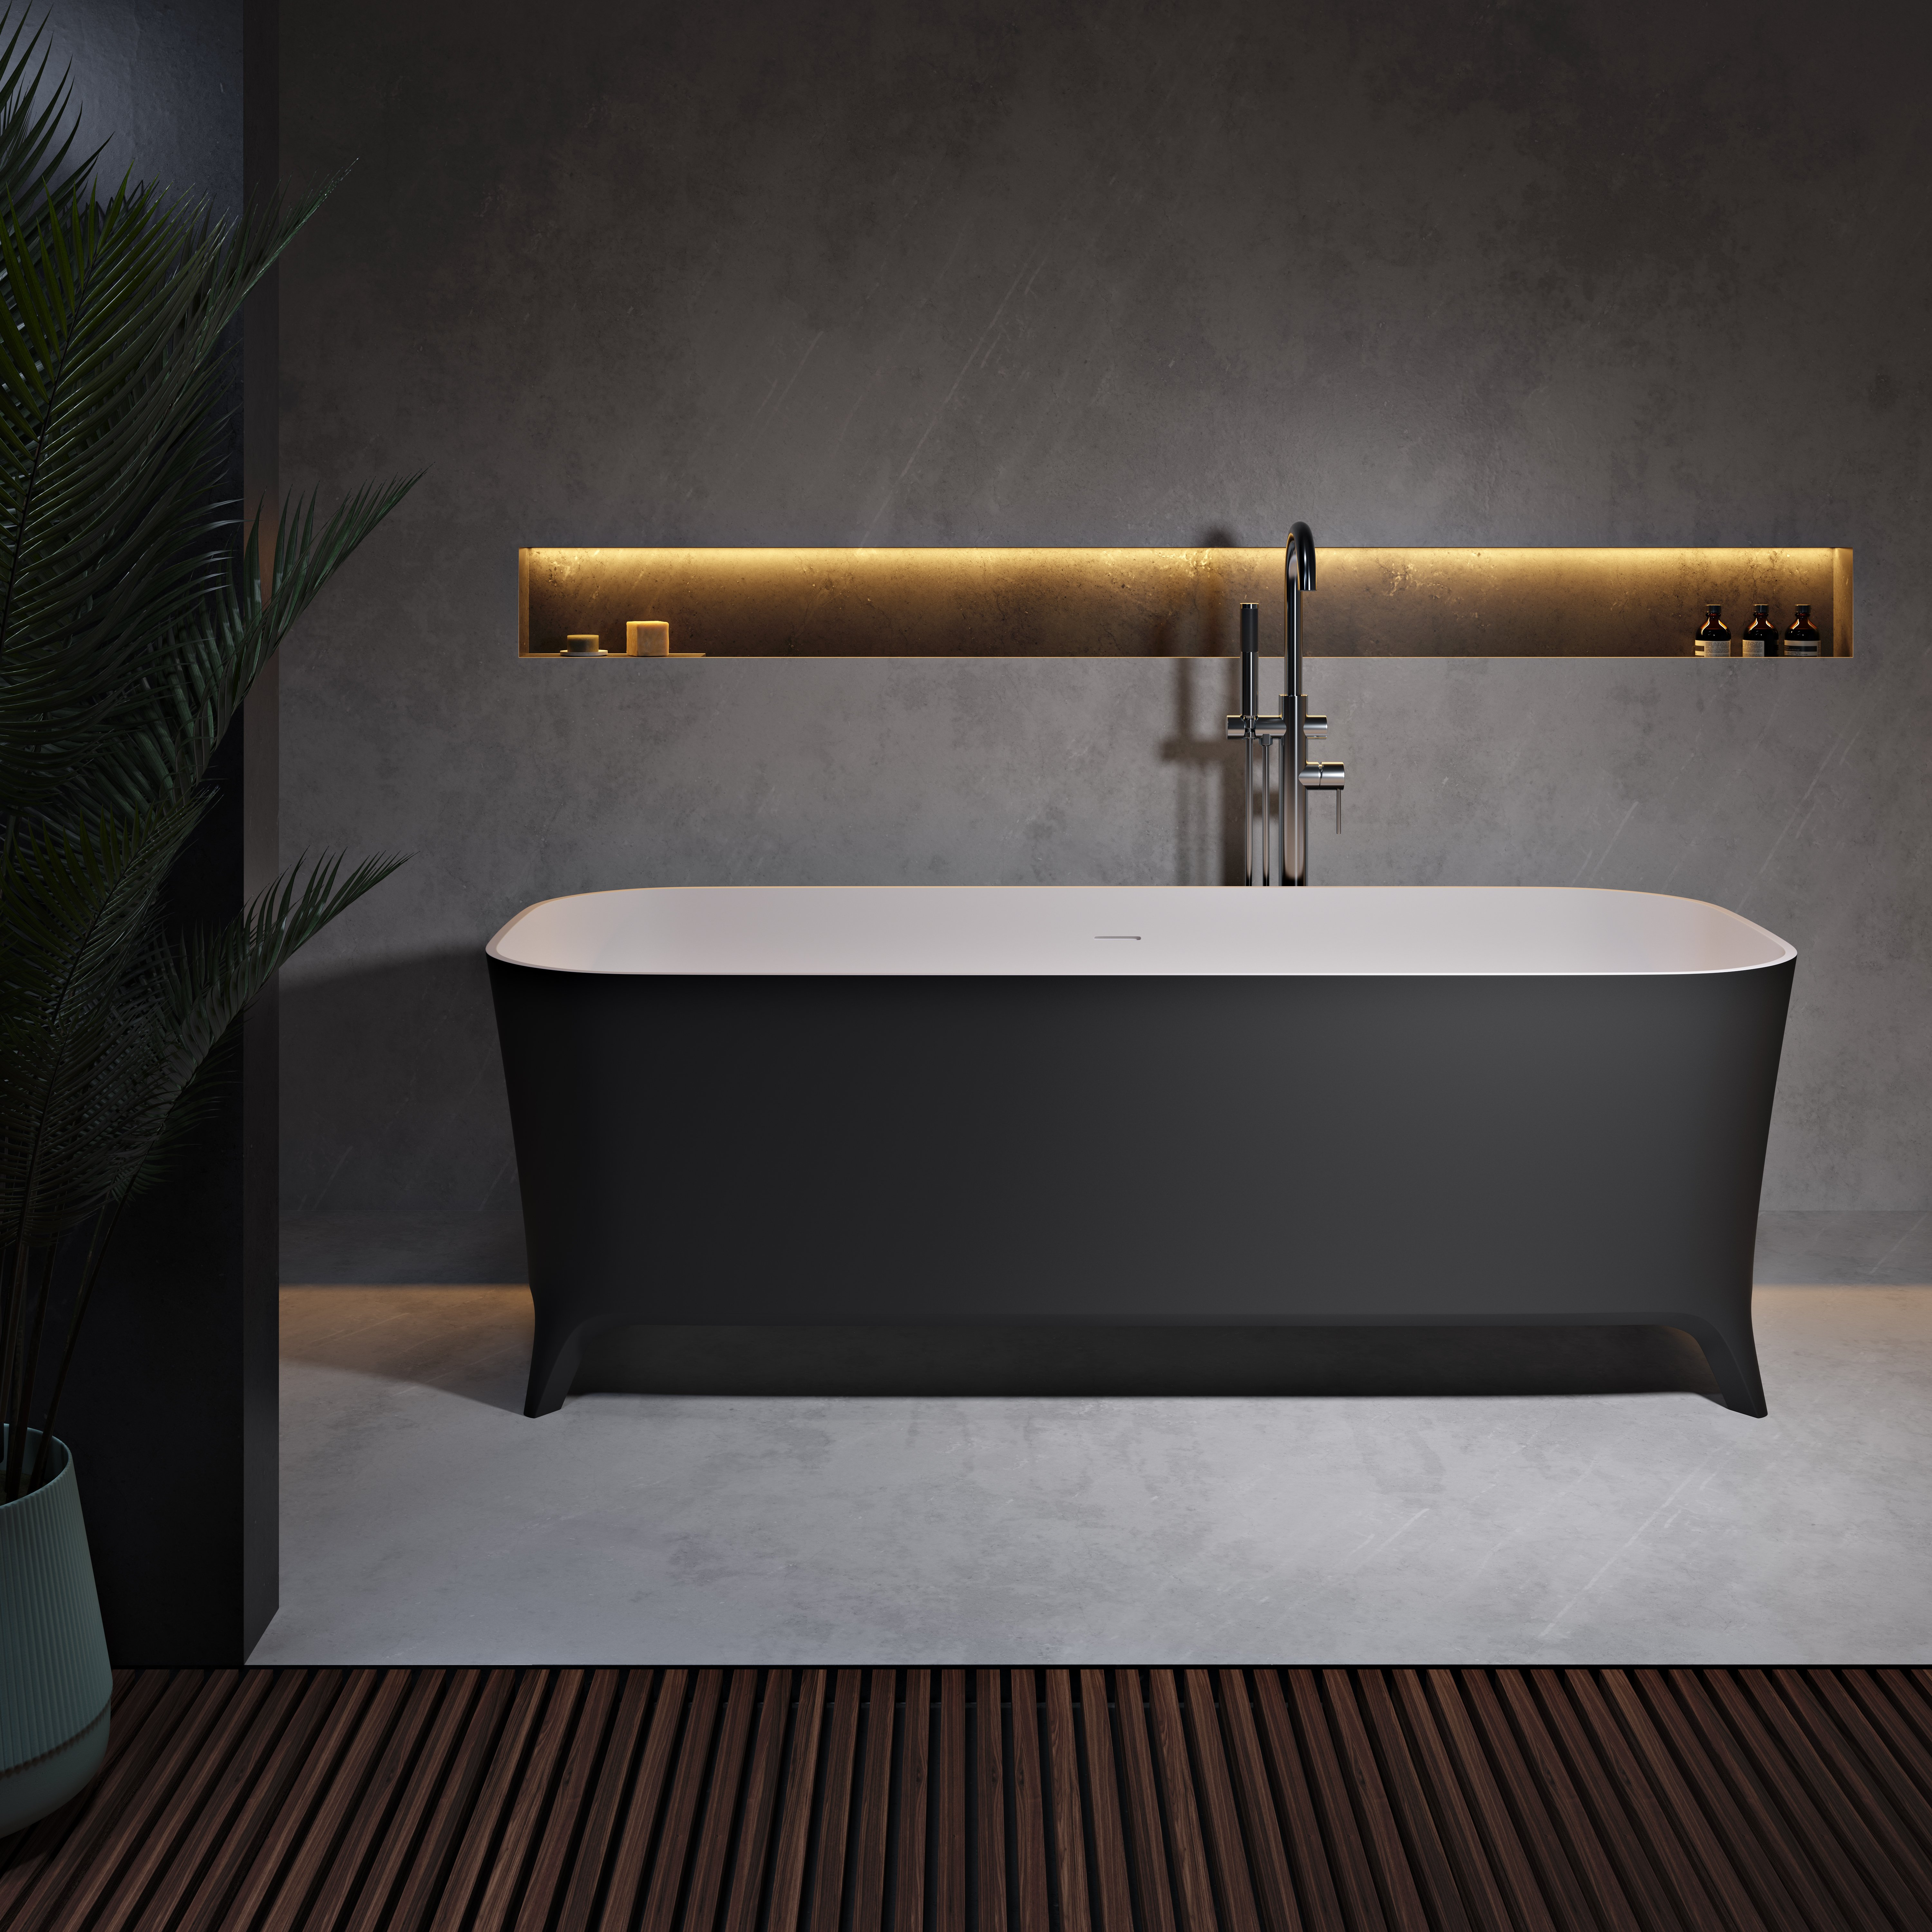 Introducing Lofty Black: our Archiproducts Design Award nominated bathtub